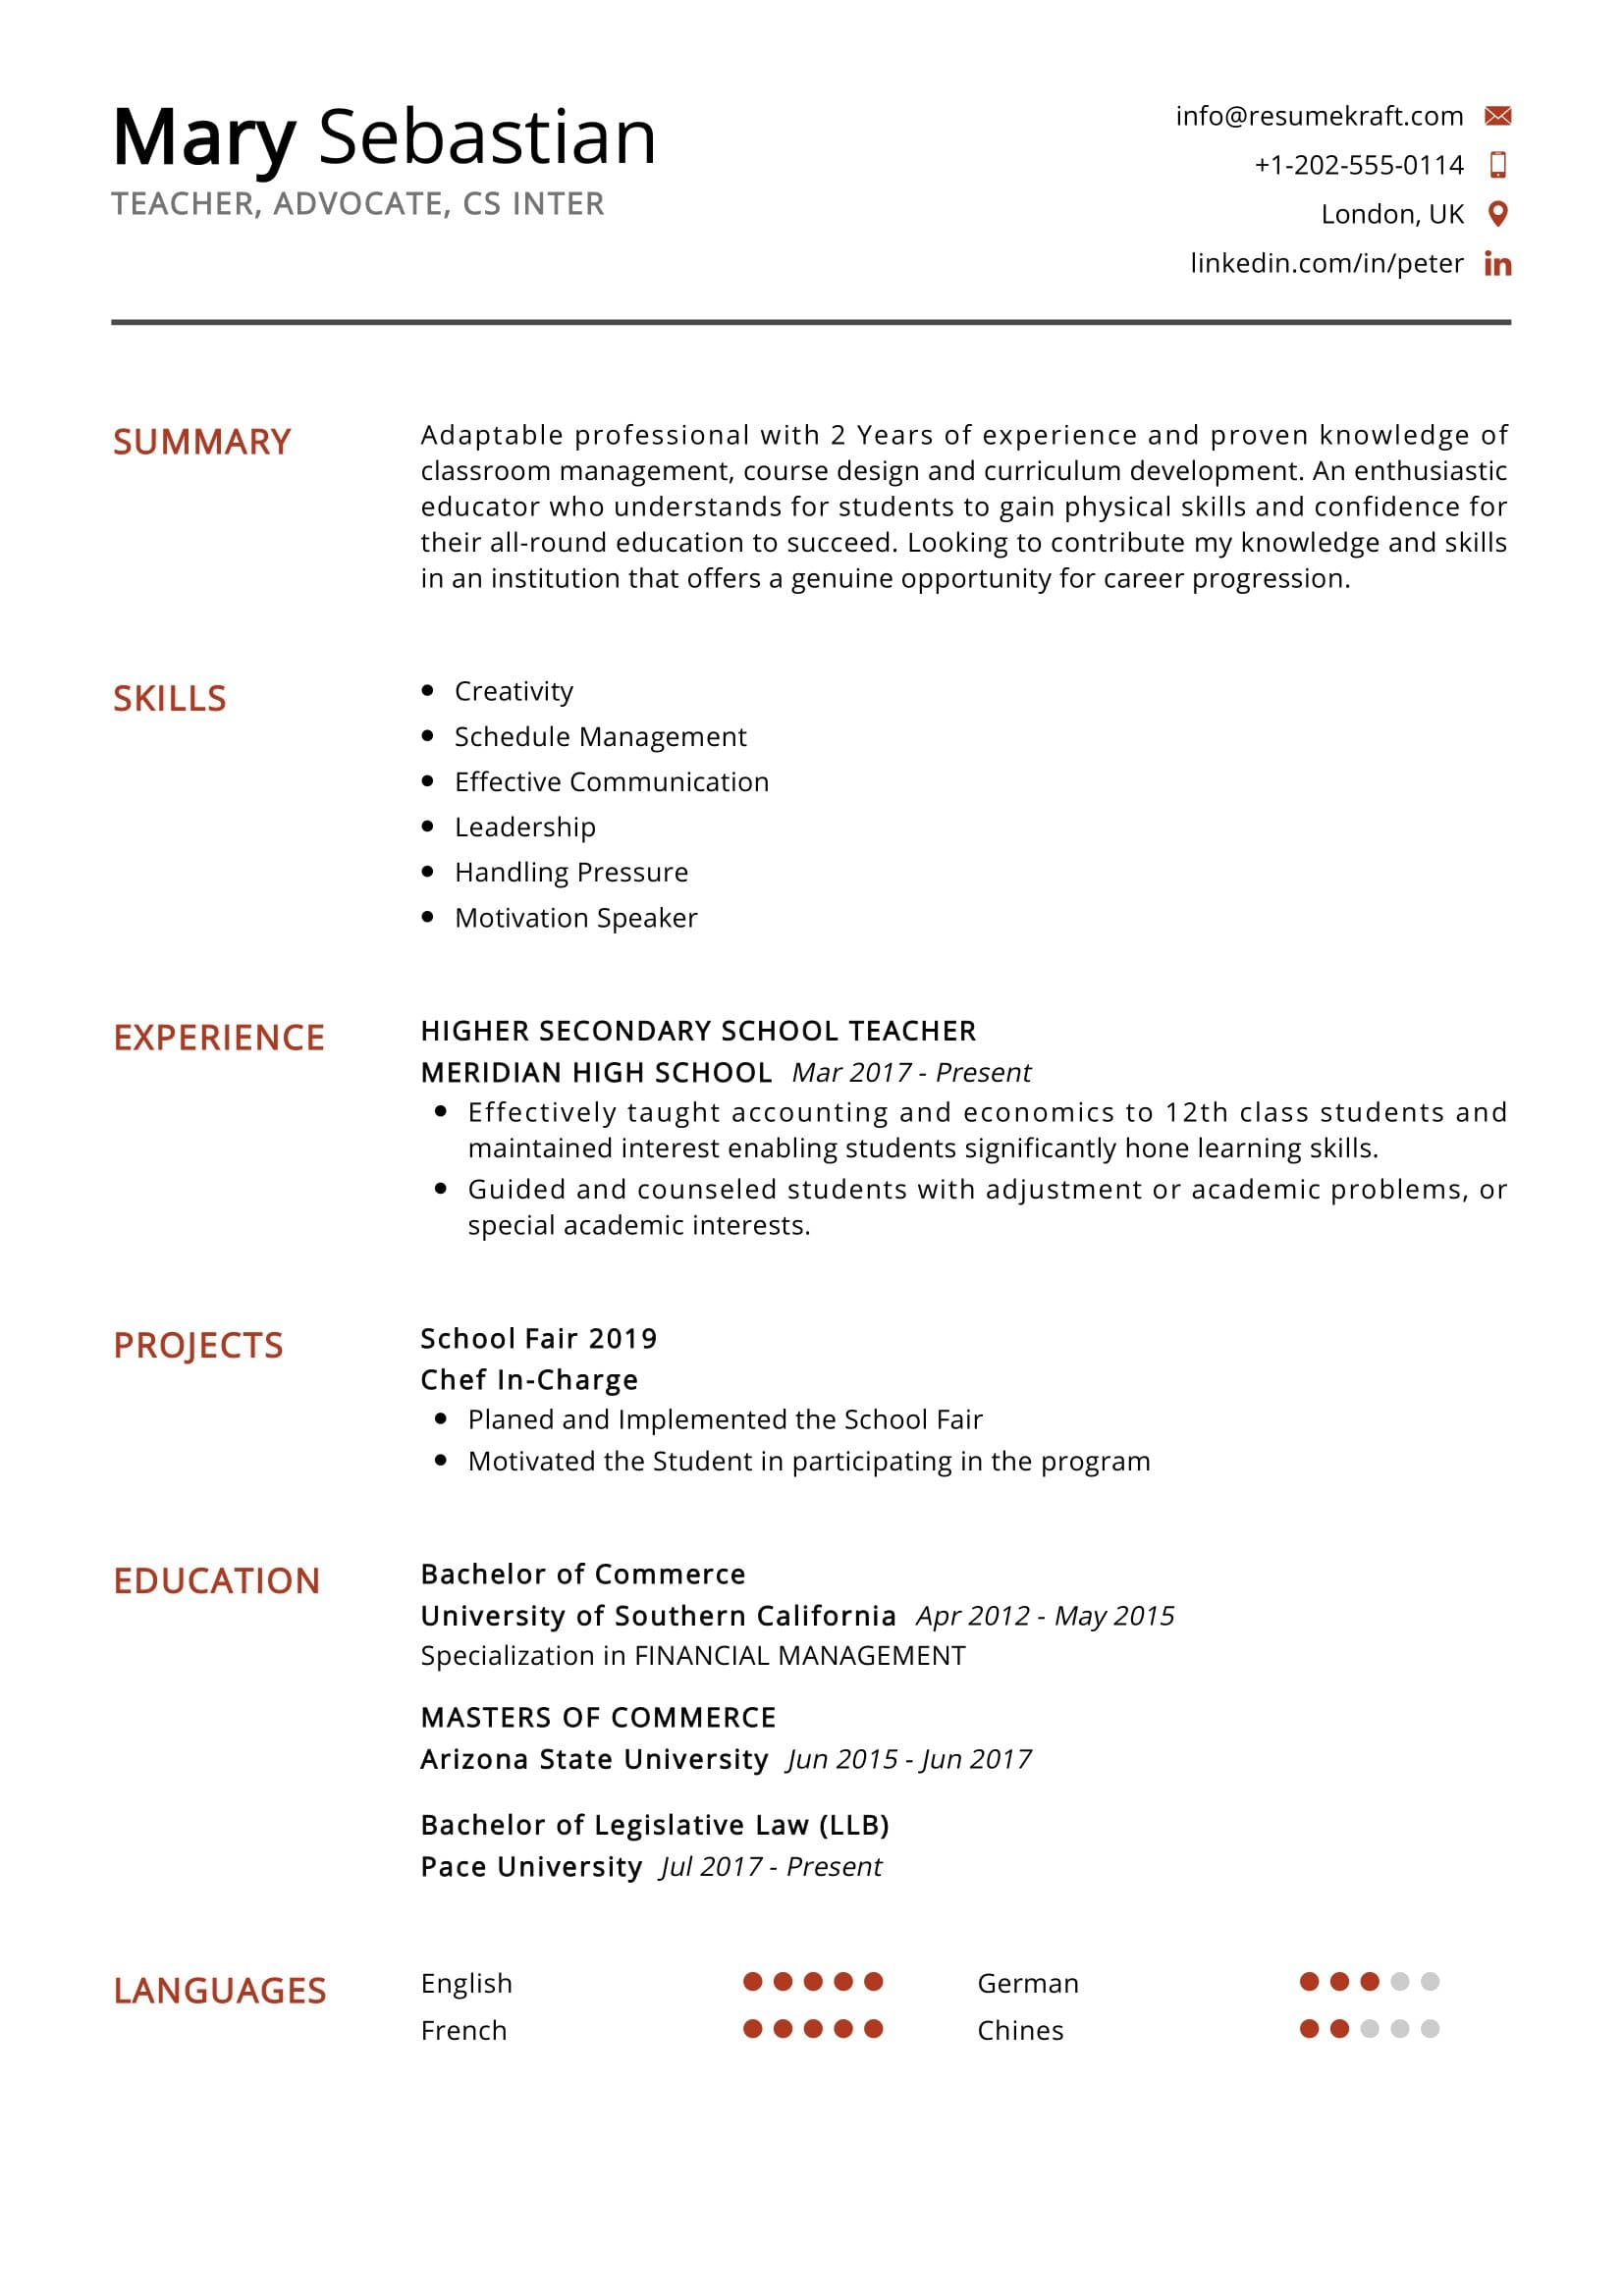 secondary school teacher resume sample resumekraft interests for law easy format job Resume Interests For Law Resume